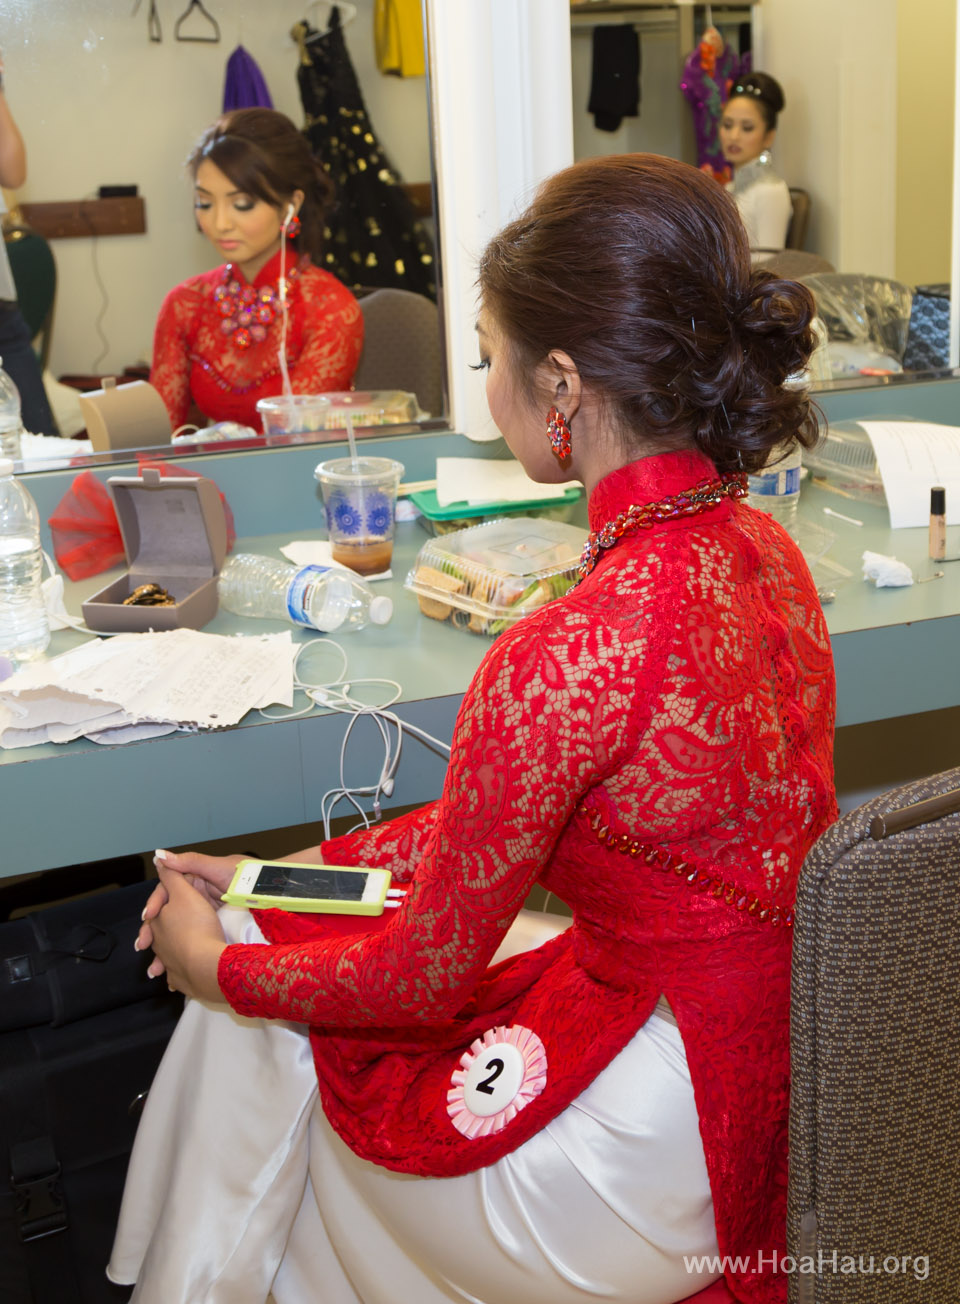 Miss Vietnam of Northern California 2014 - Hoa Hau Ao Dai Bac Cali 2014 - Behind the Scenes - Image 262